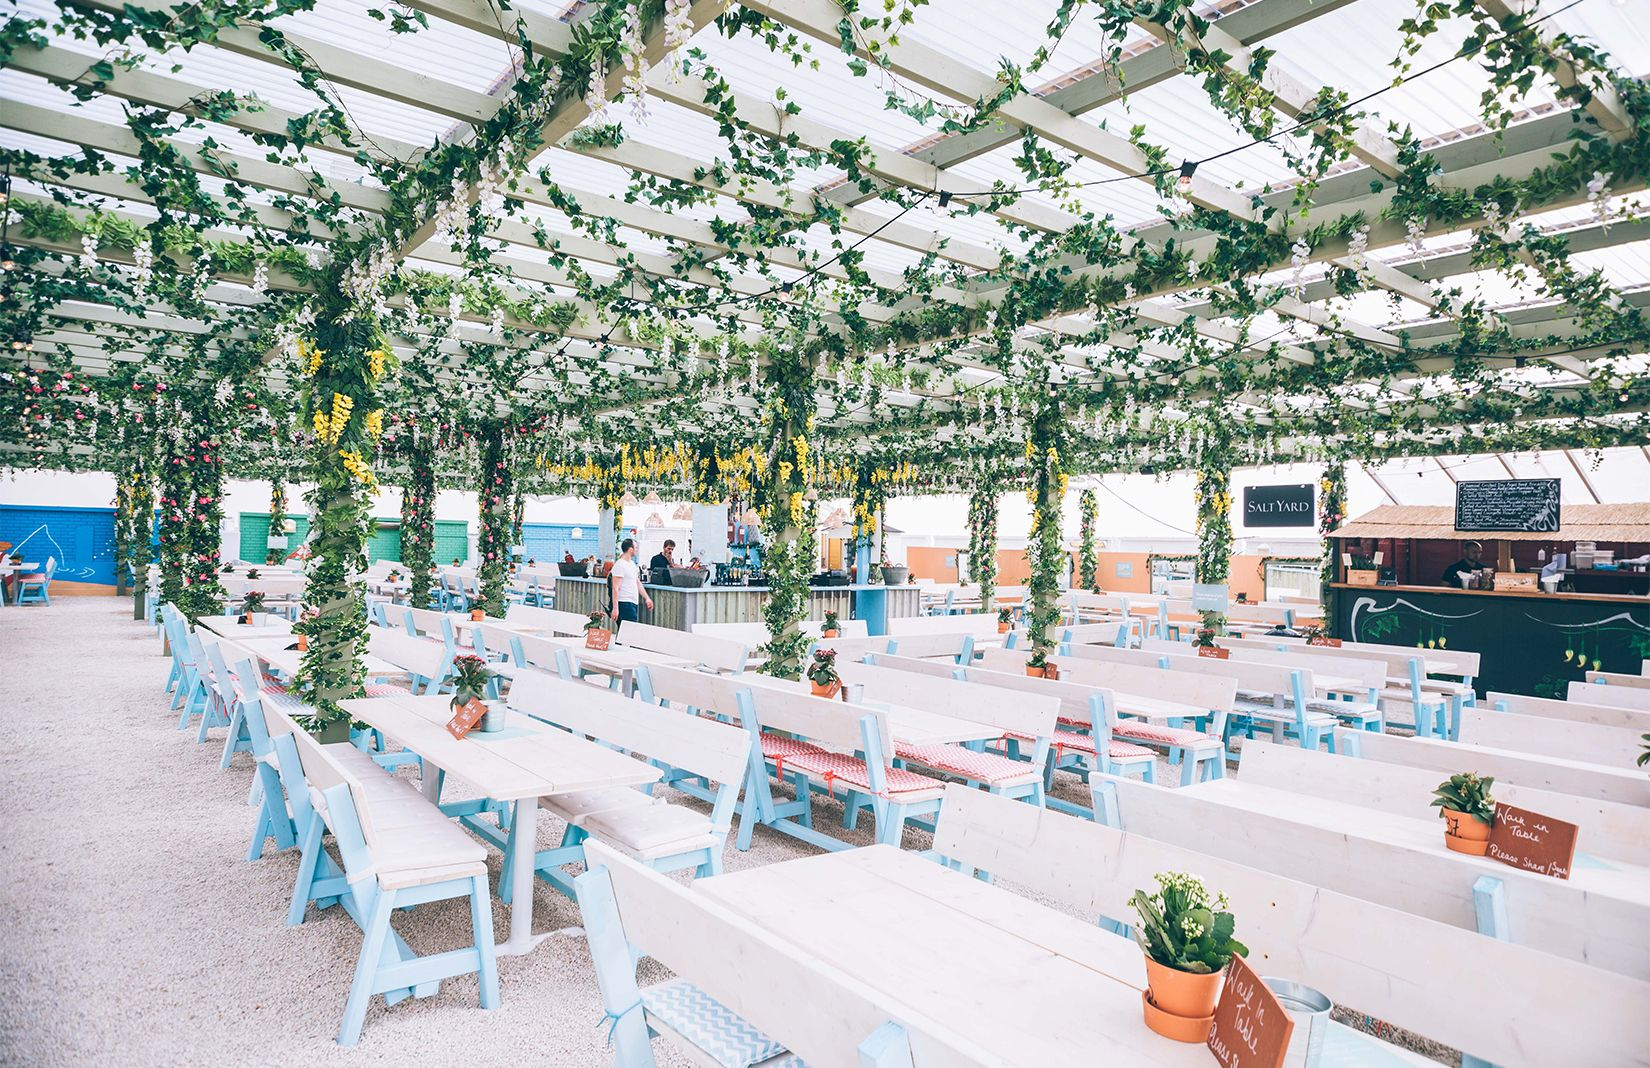 9 Of The Best Rooftop Bars In London This Summer Pergola On The Roof London Bars Best Rooftop Bars